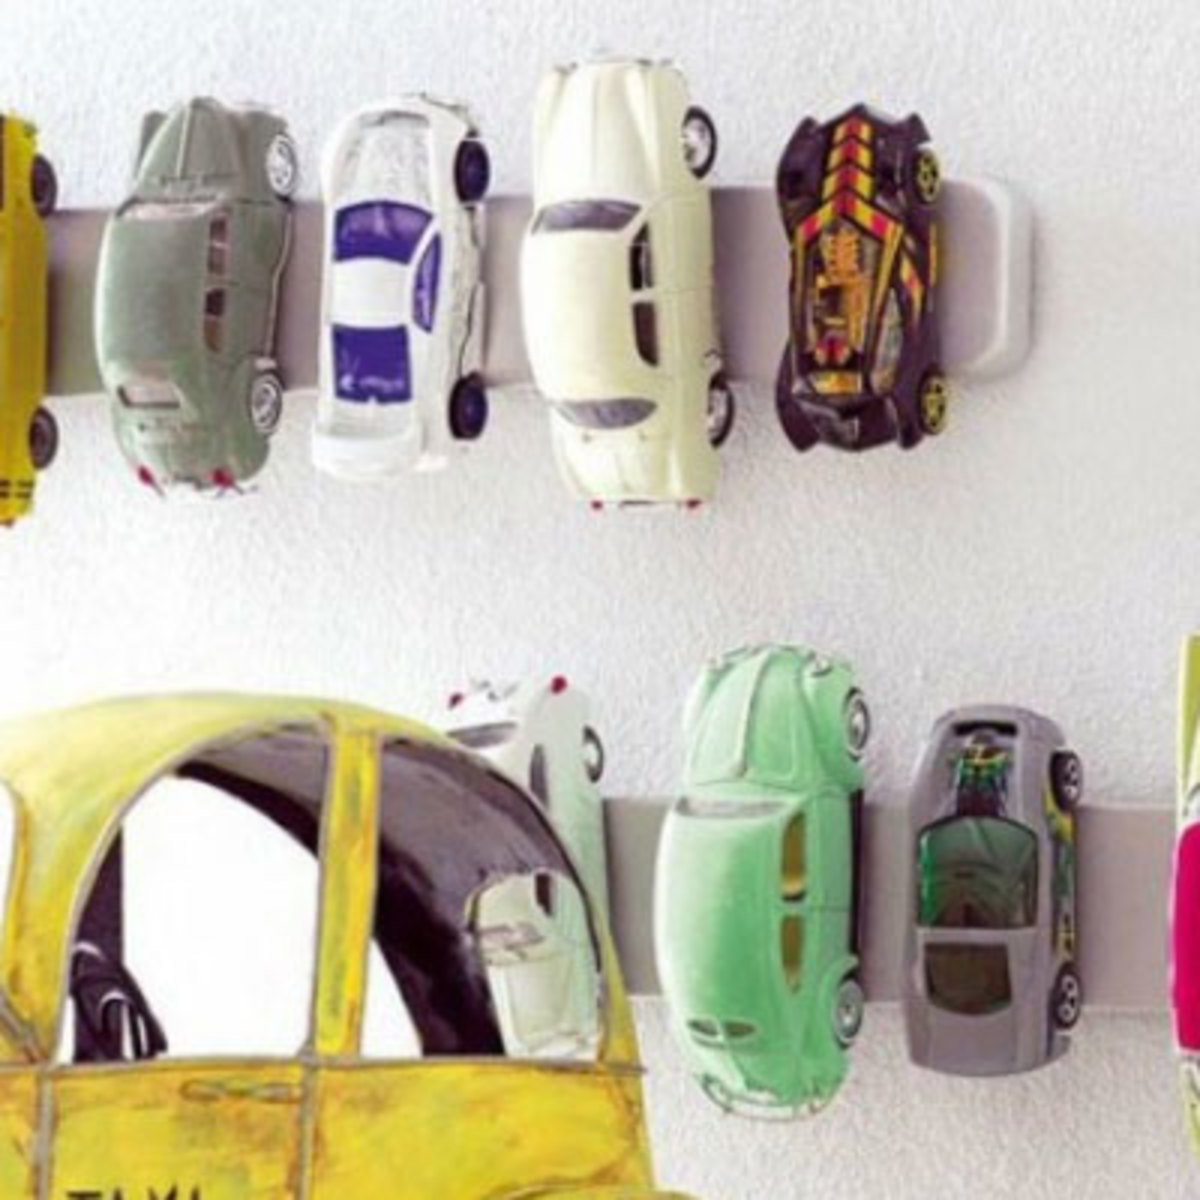 Magnetic Wall Strips for Toy Cars | Easy Organization Ideas for the Home